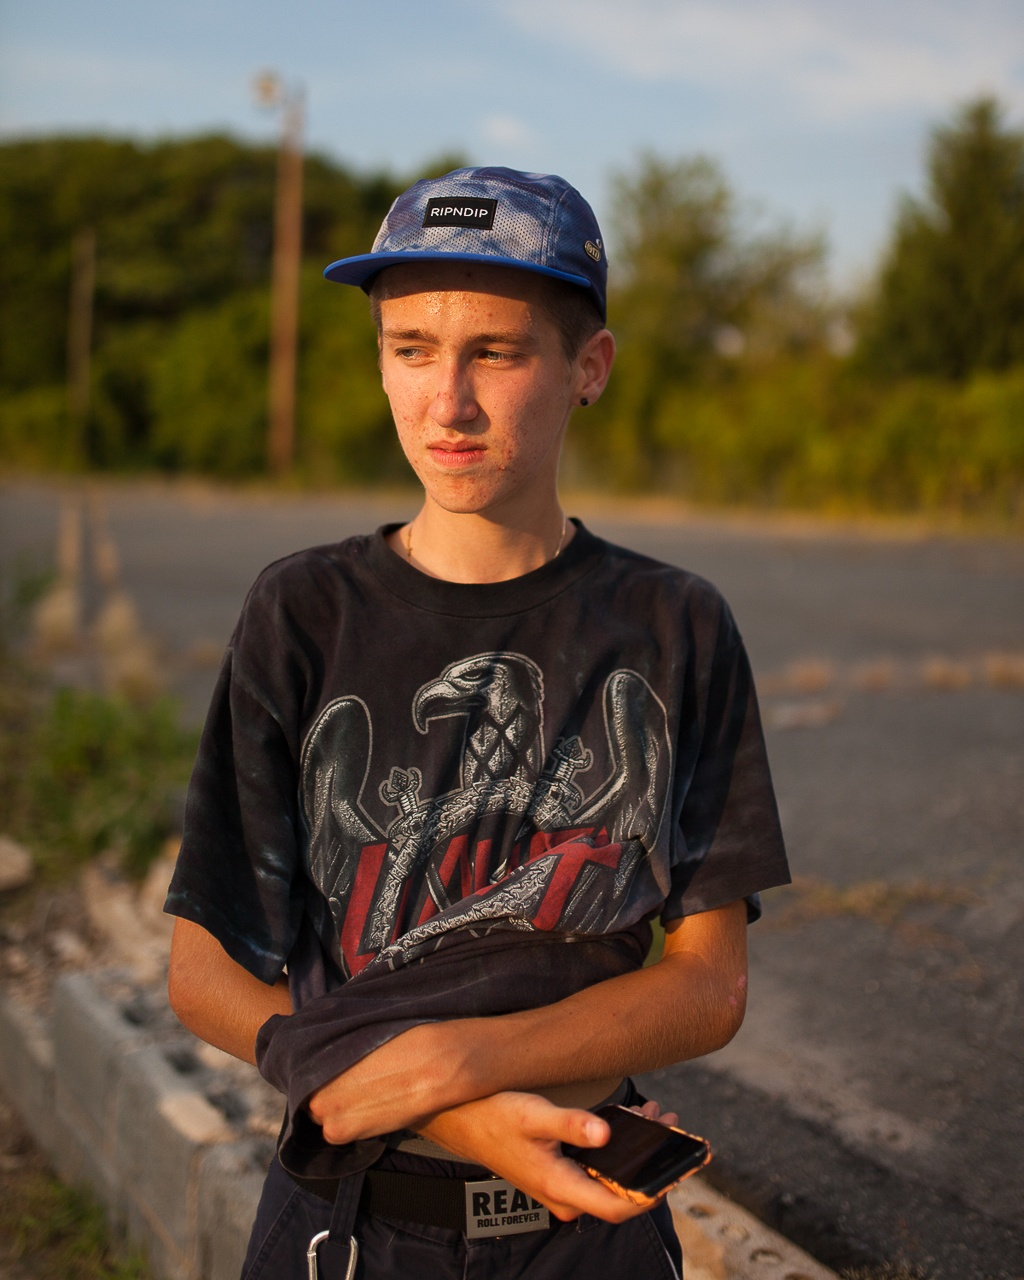 Portrait of a Skateboarder